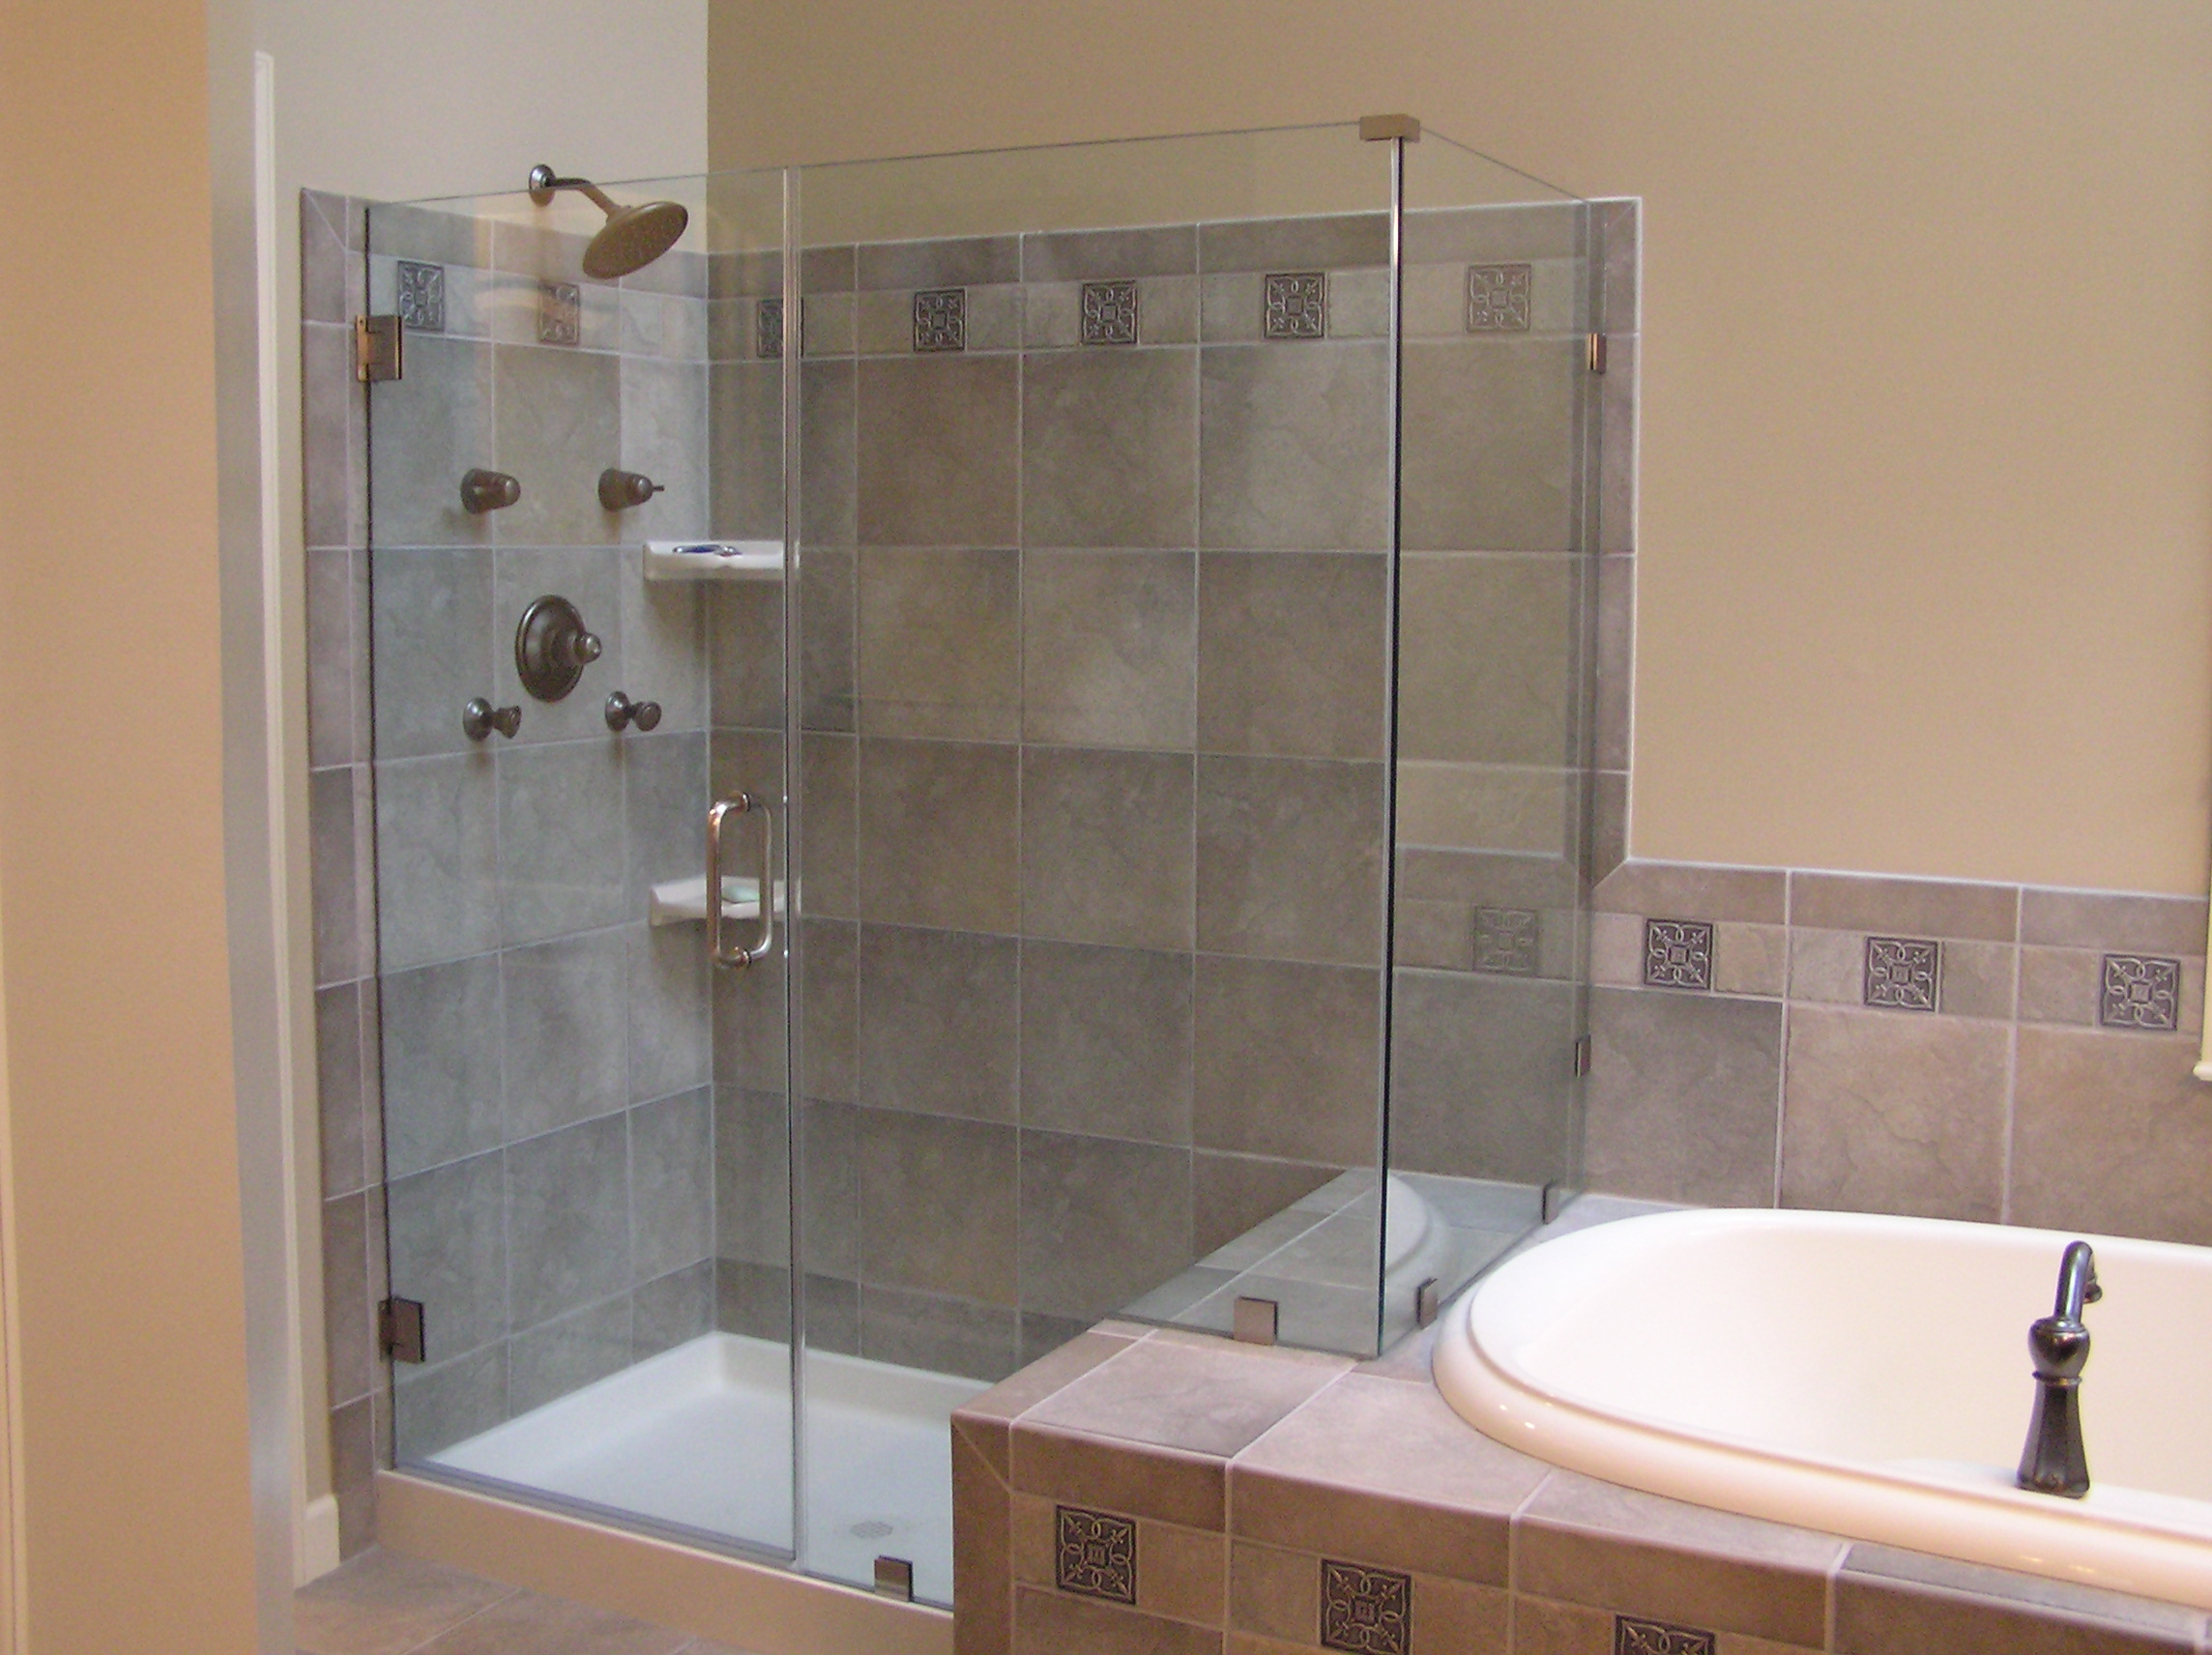 Bathroom Renovation Ideas And Cost bathroom remodeling cost - large and beautiful photos. photo to